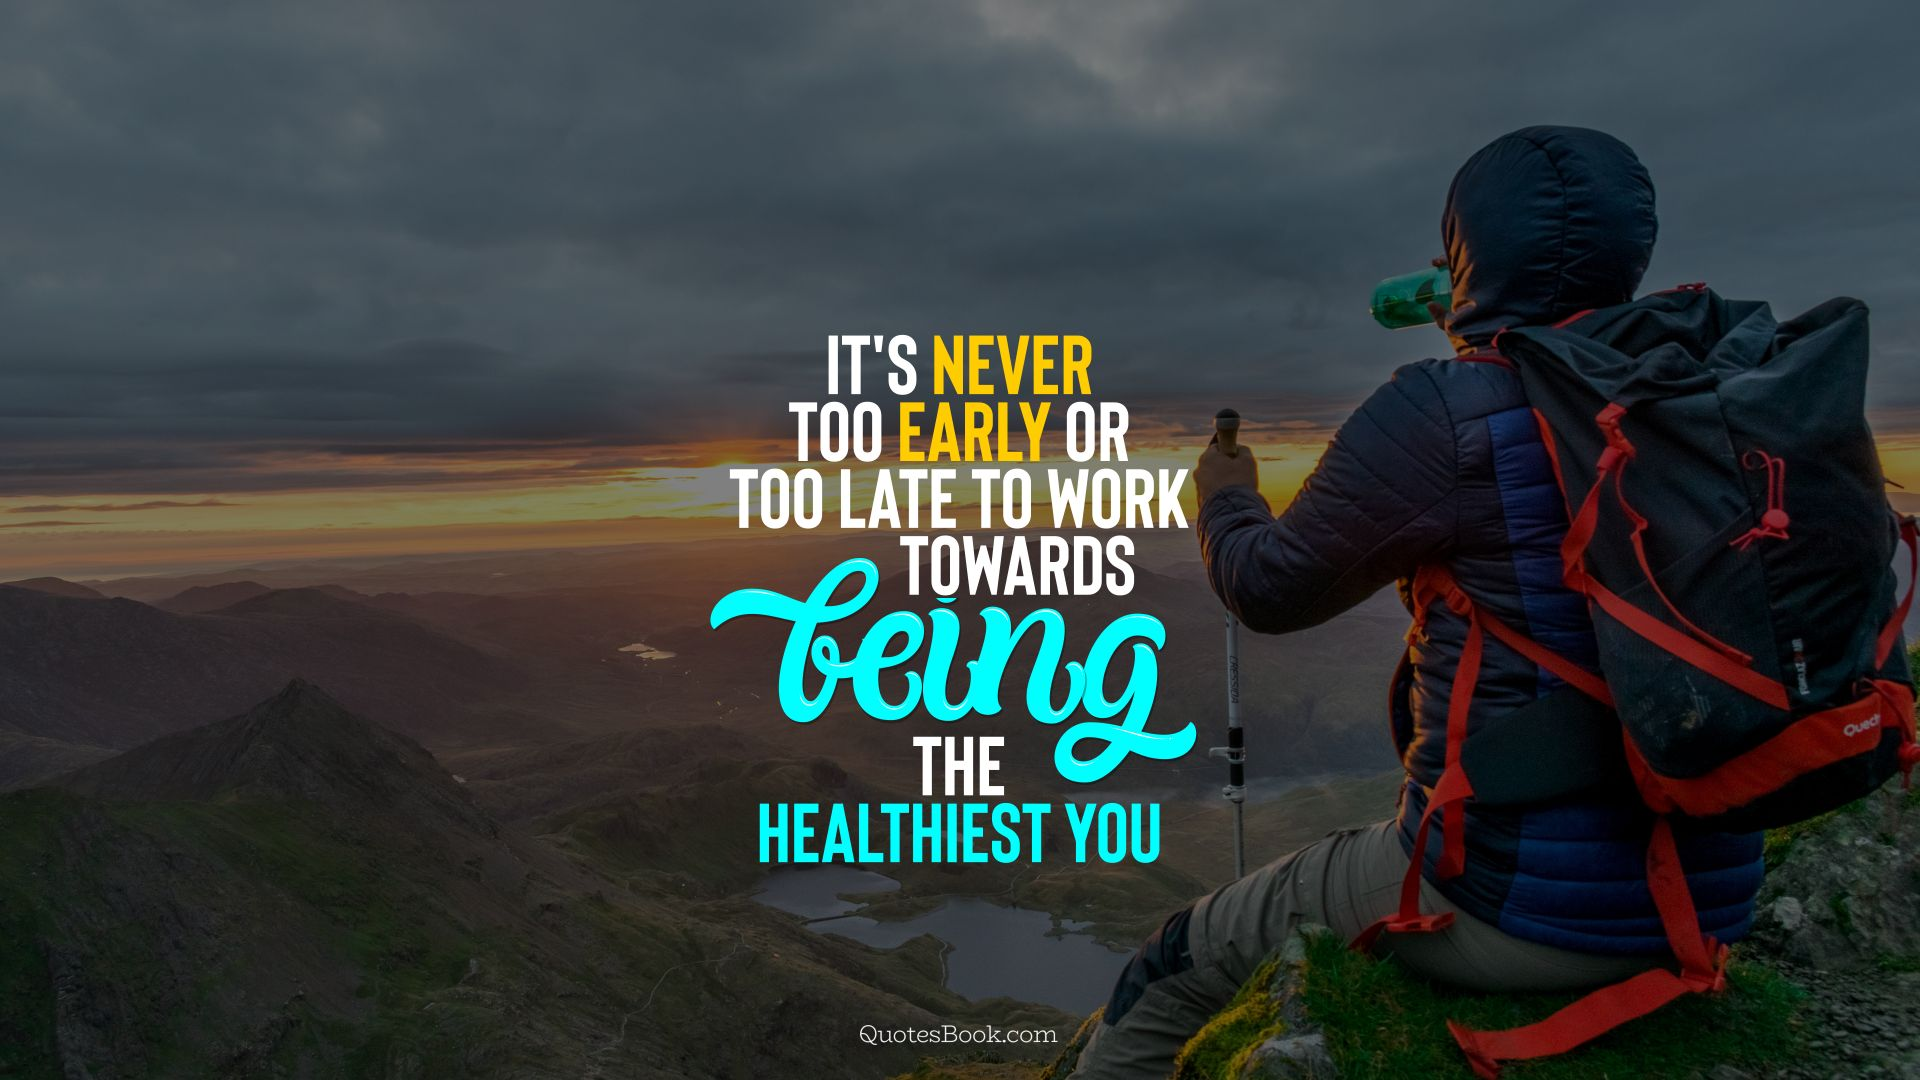 It's never too early or too late to work towards being the healthiest you